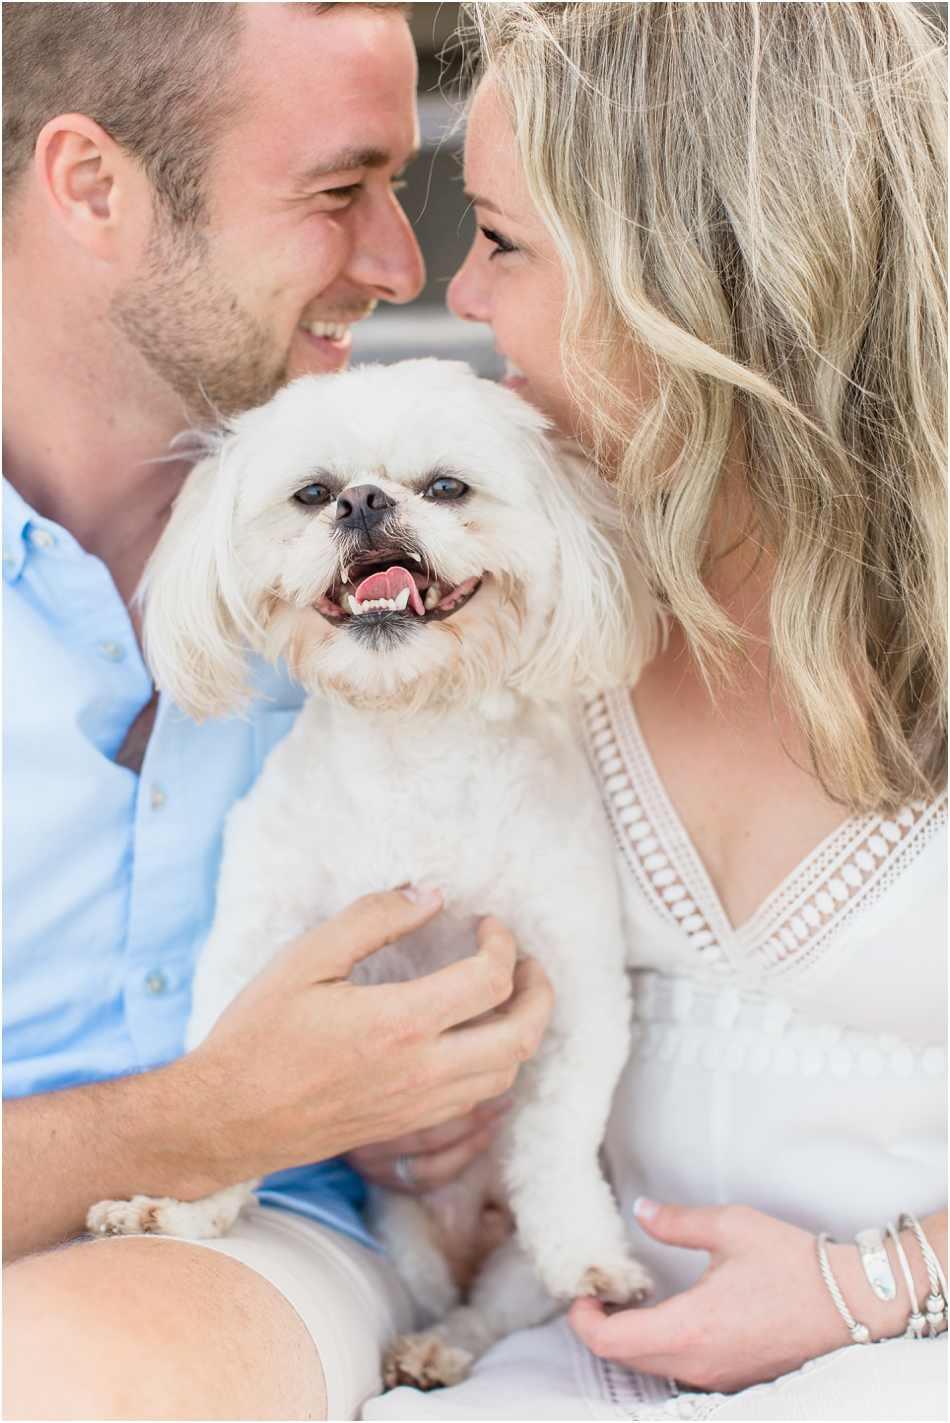 styling_your_engagement_session_tips_tricks_prop_dog_flowers_style_styled_cape_cod_boston_new_england_wedding_photographer_Meredith_Jane_Photography_photo_0442.jpg